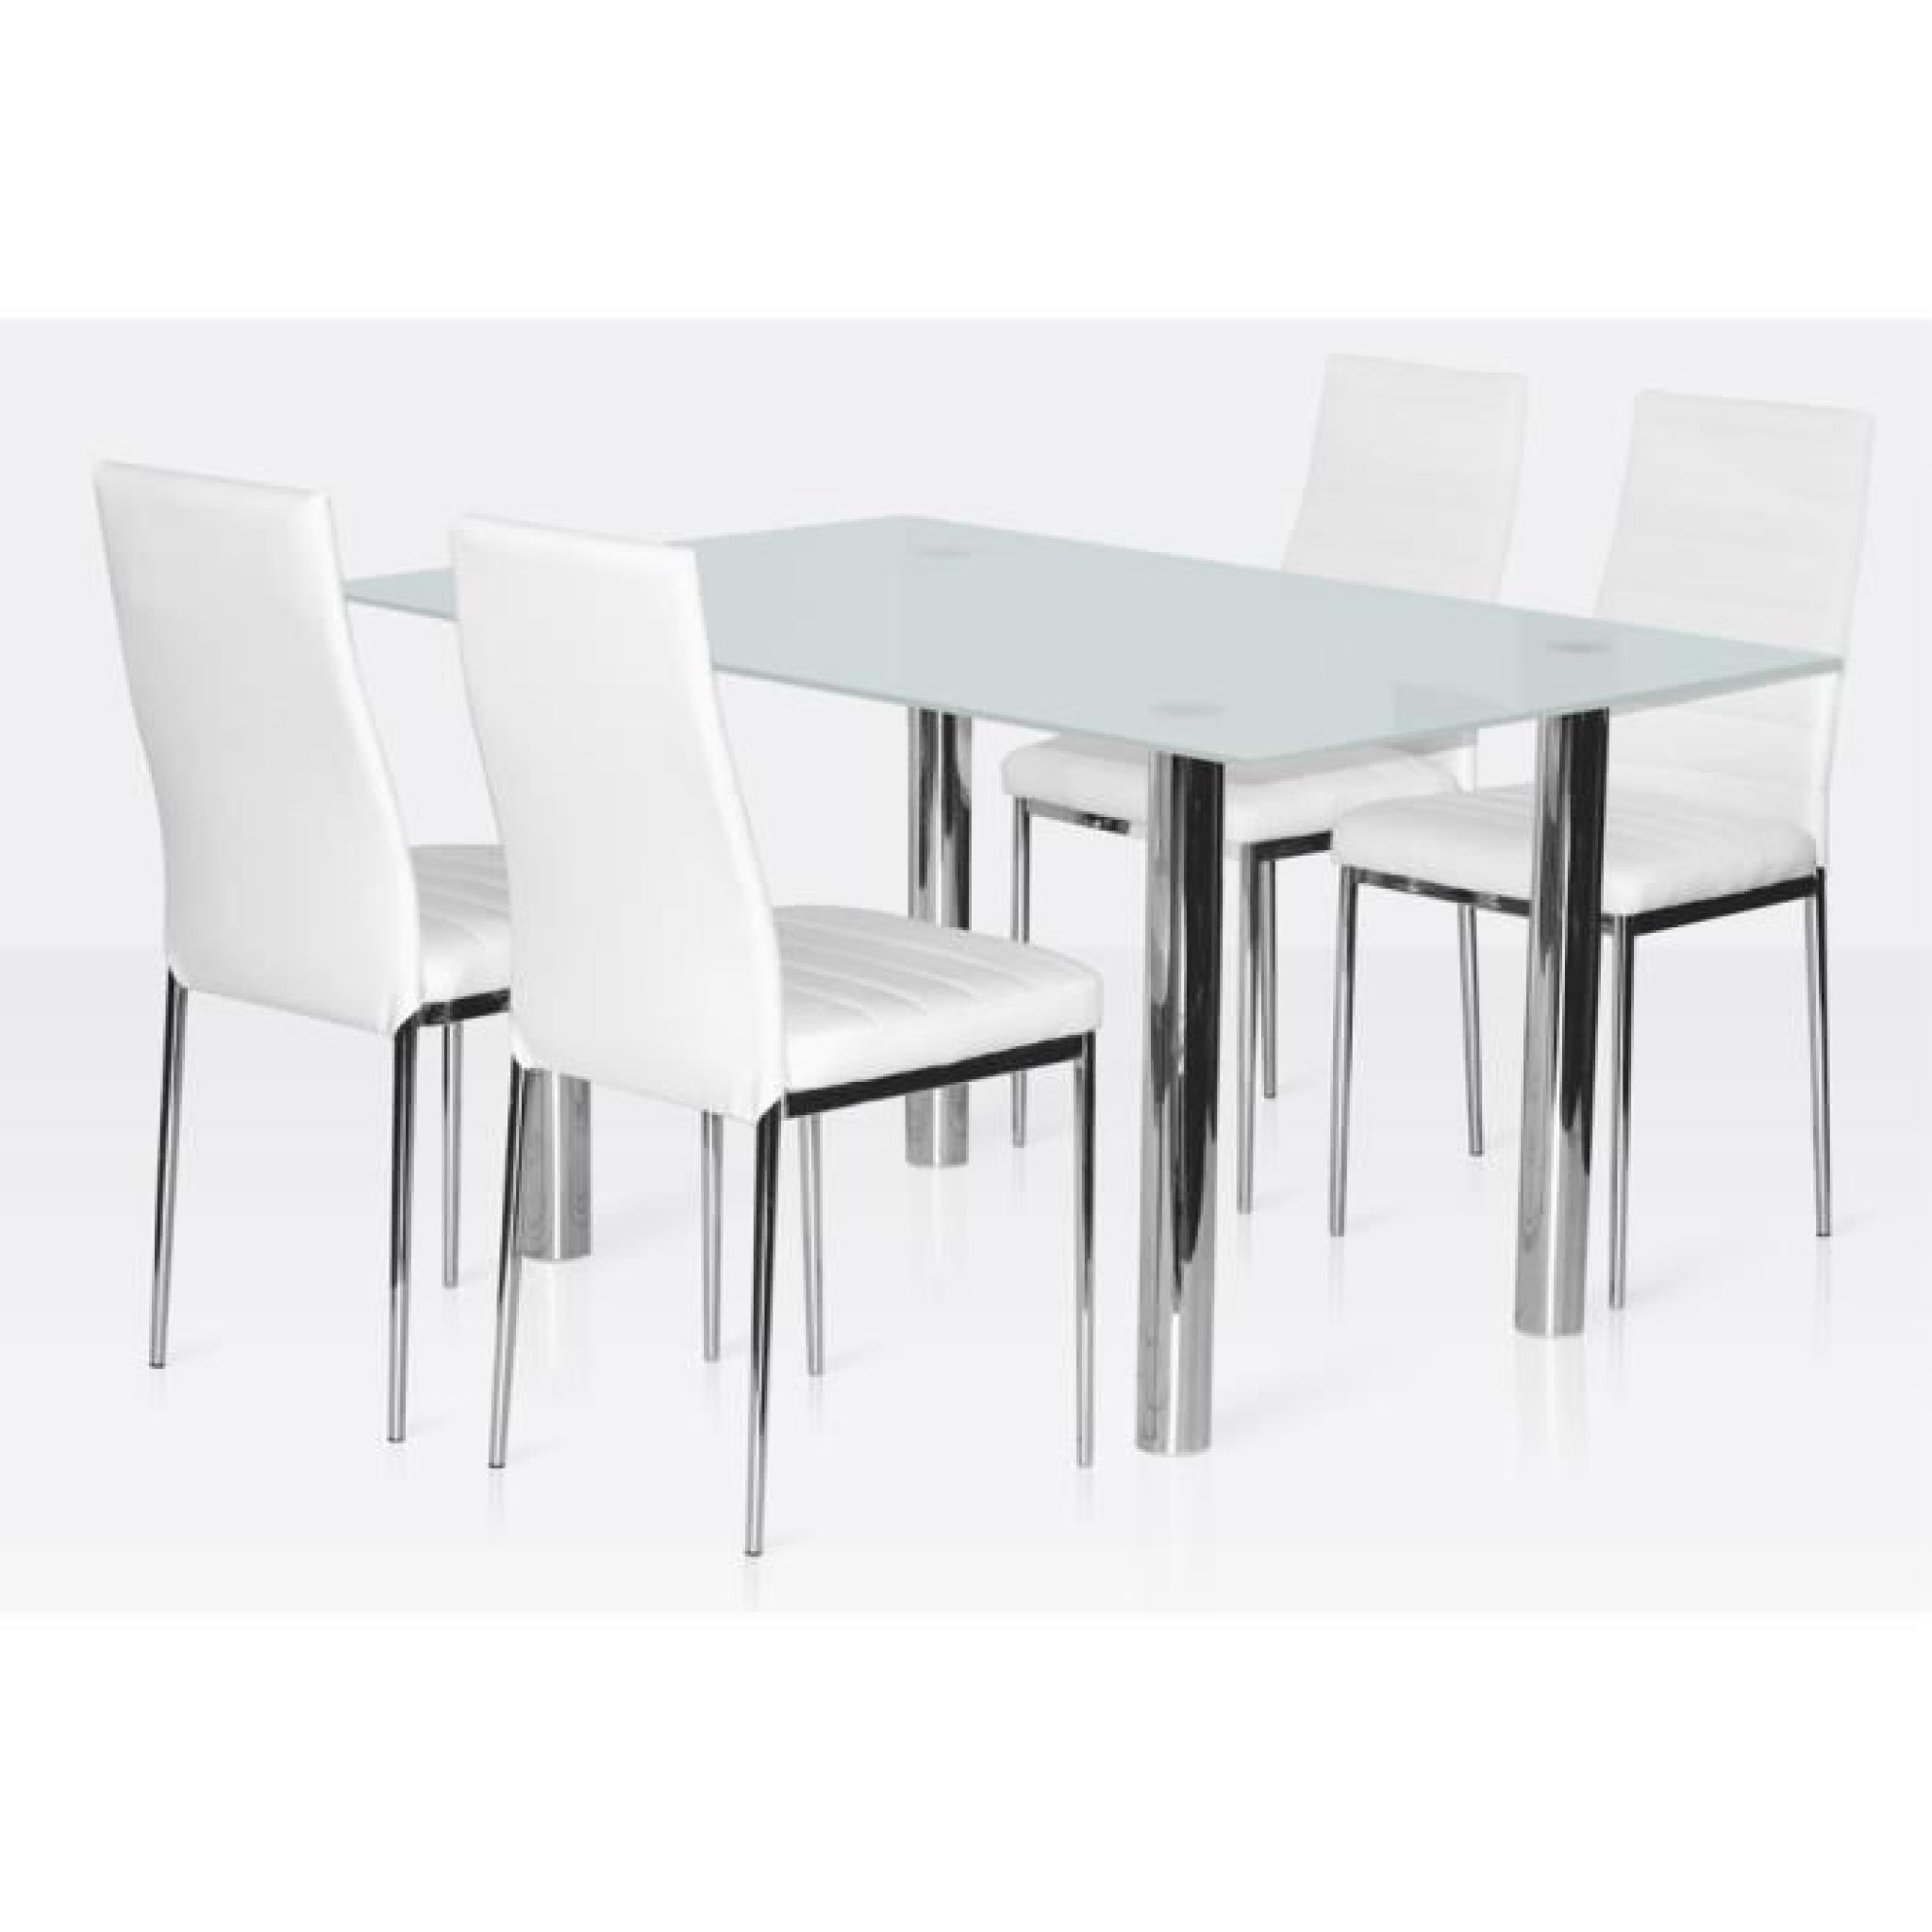 90 table a manger en verre design pas cher table a for Table salle a manger verre extensible